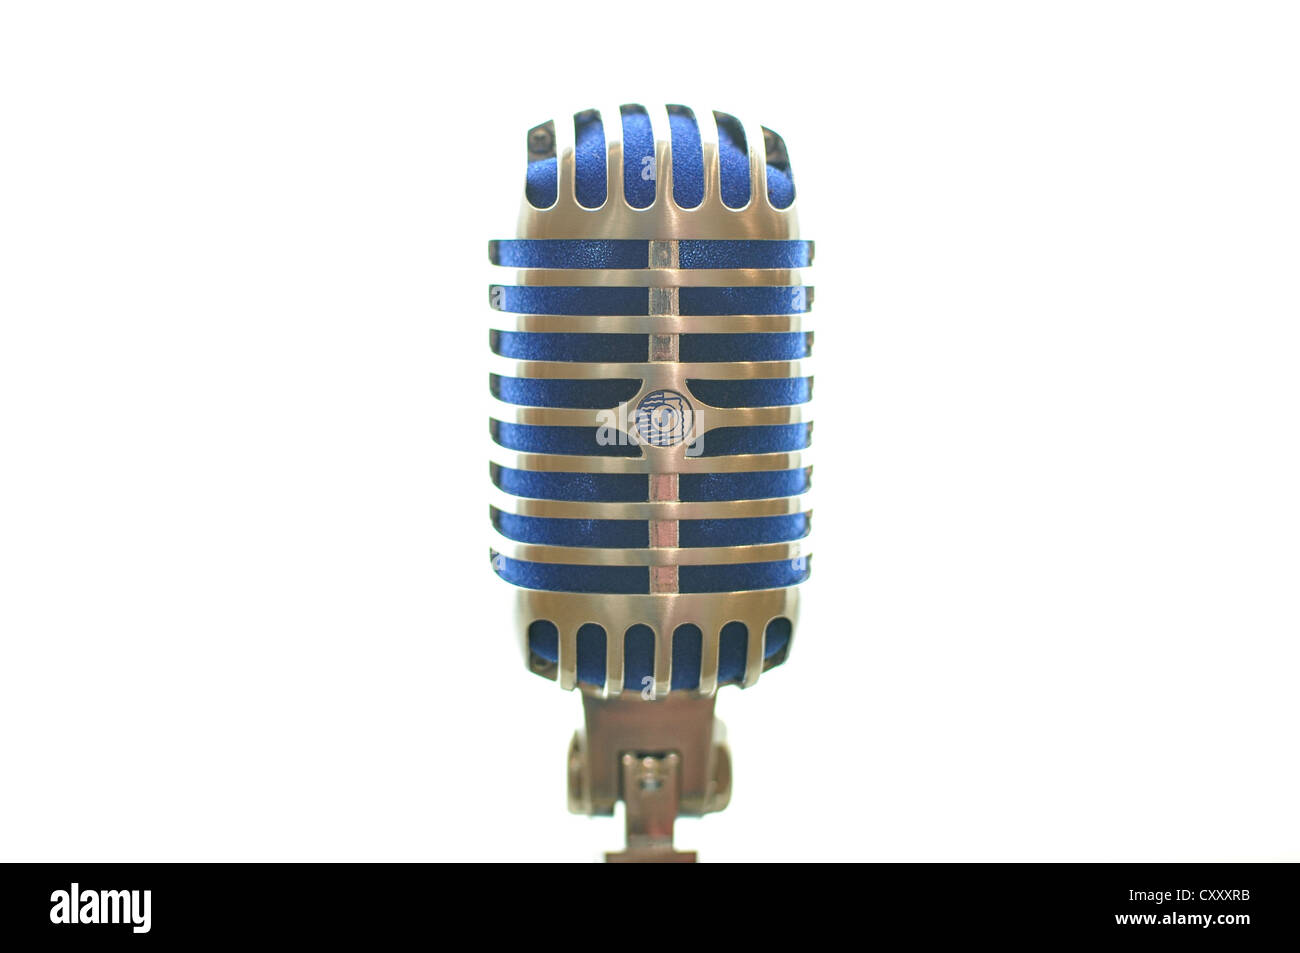 An old-style microphone. - Stock Image